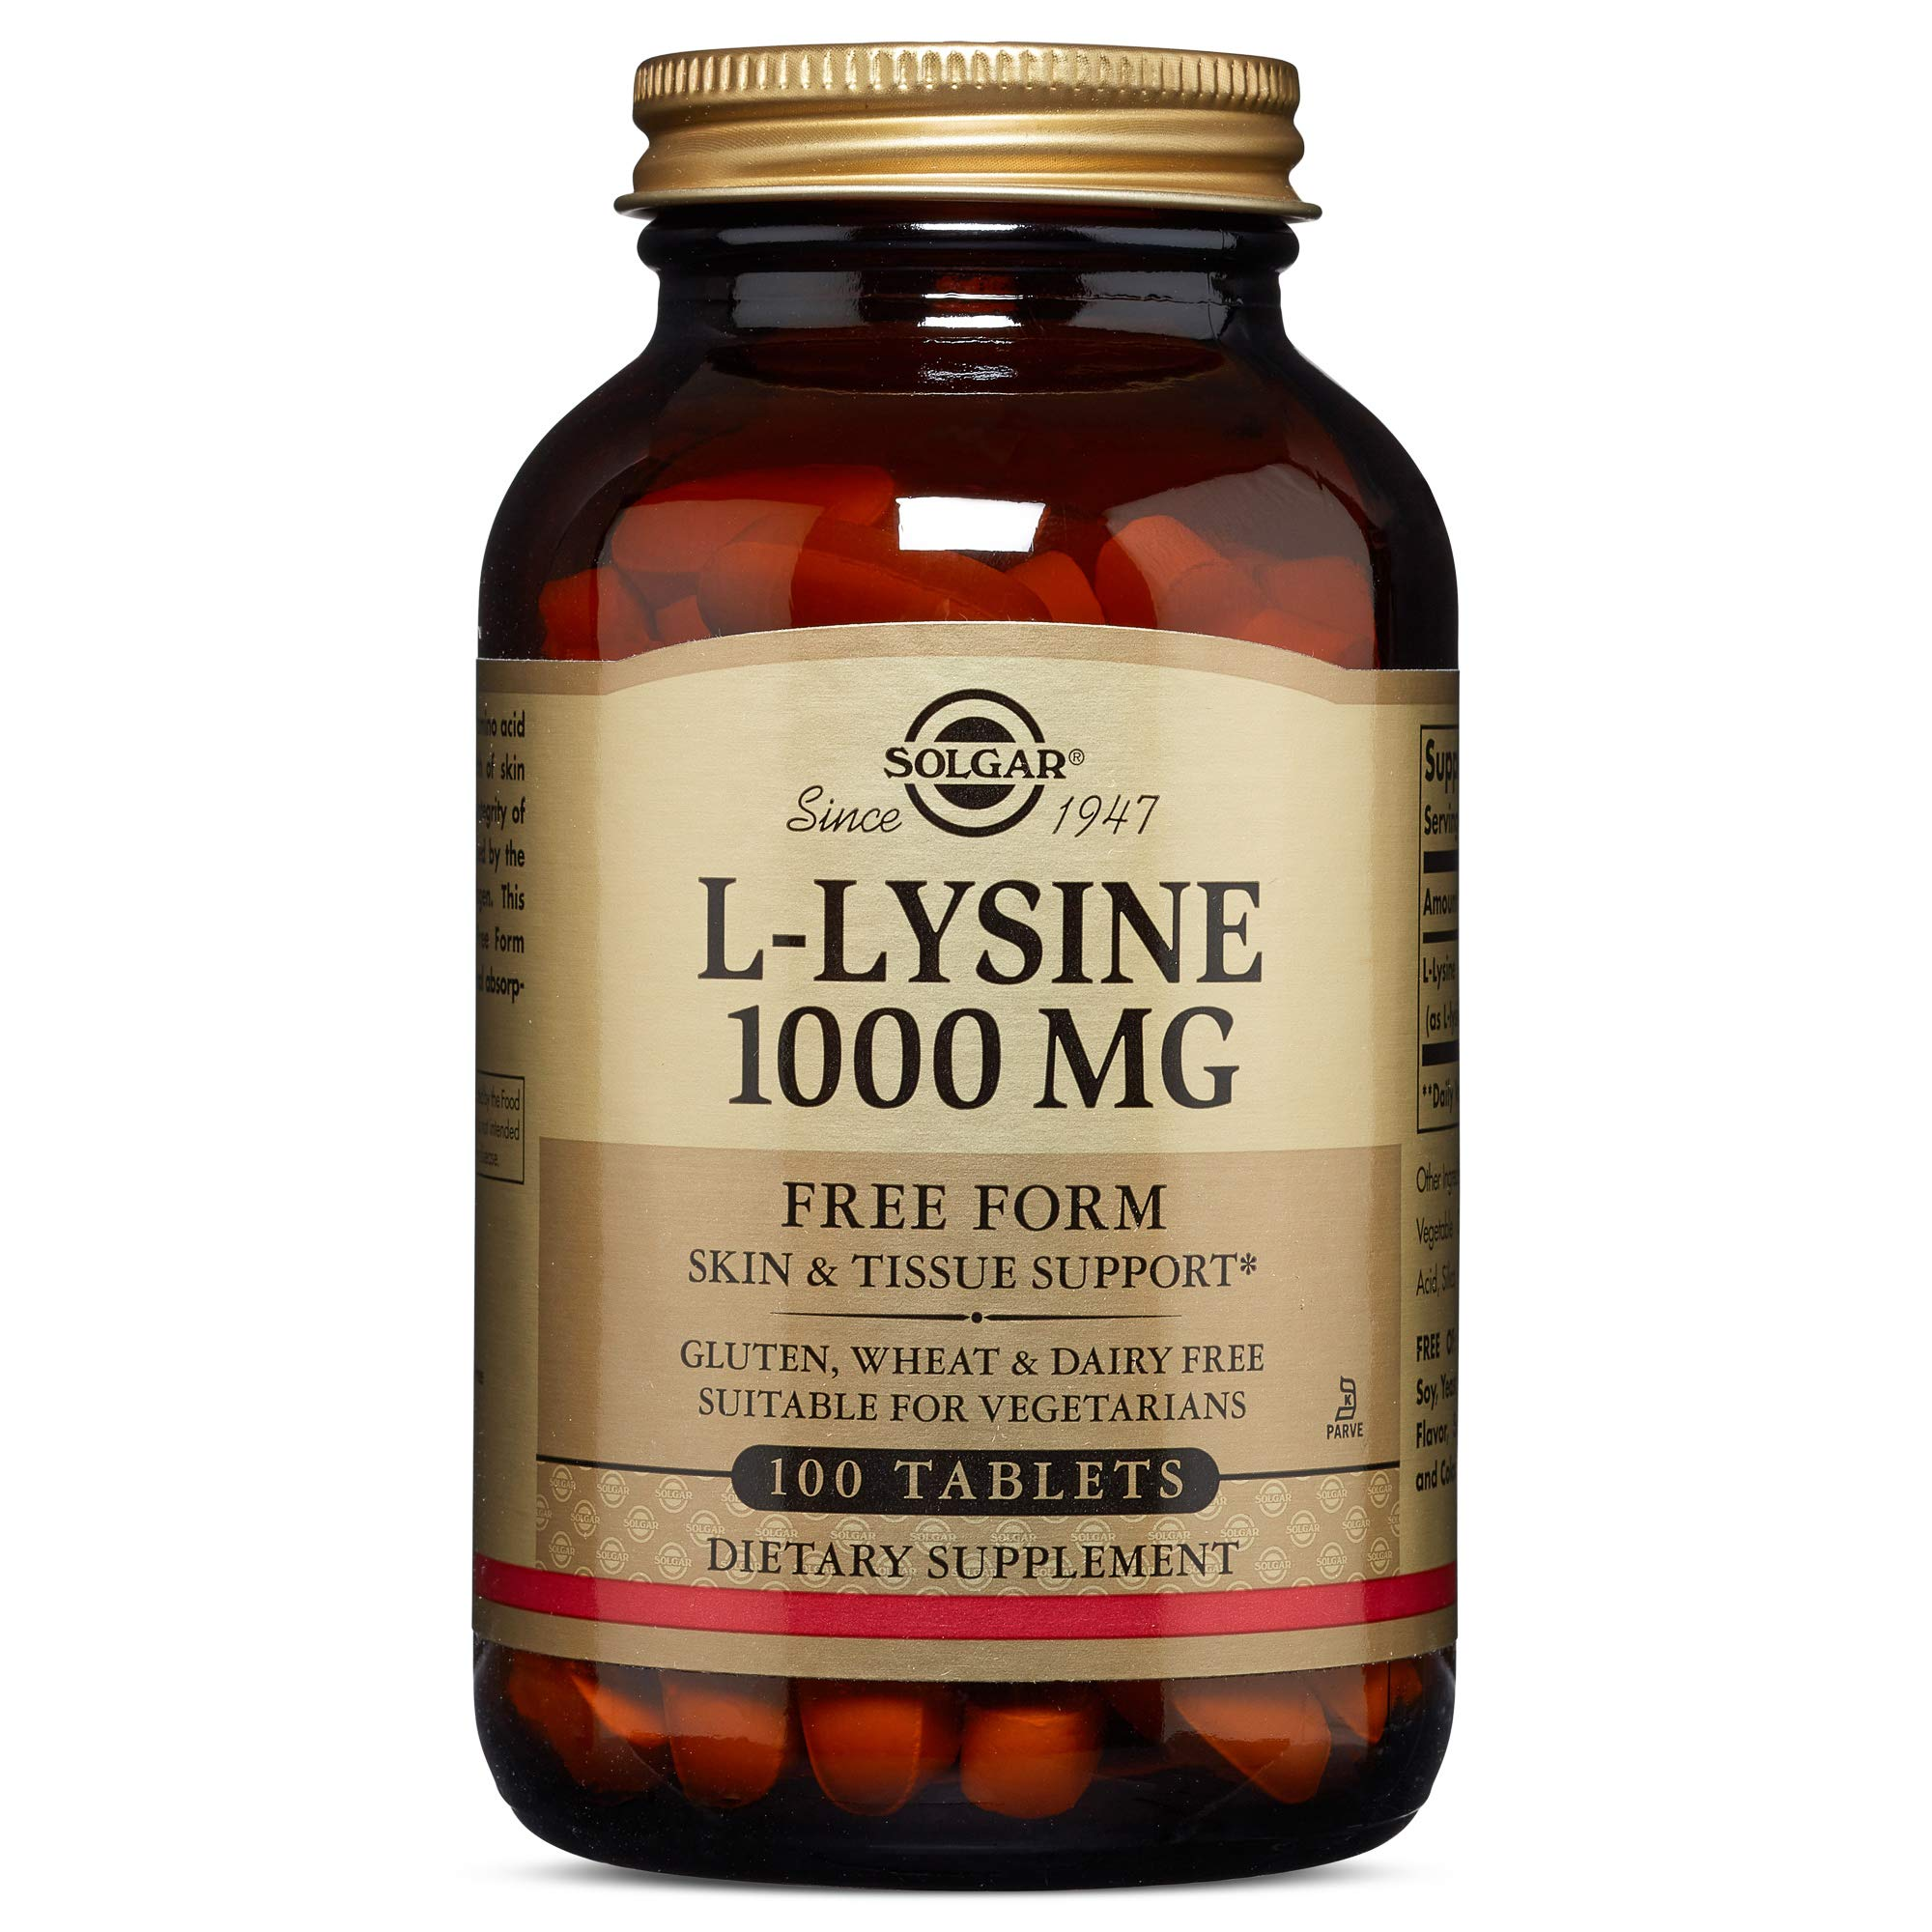 Solgar L-Lysine 1000 mg, 100 Tablets by Solgar